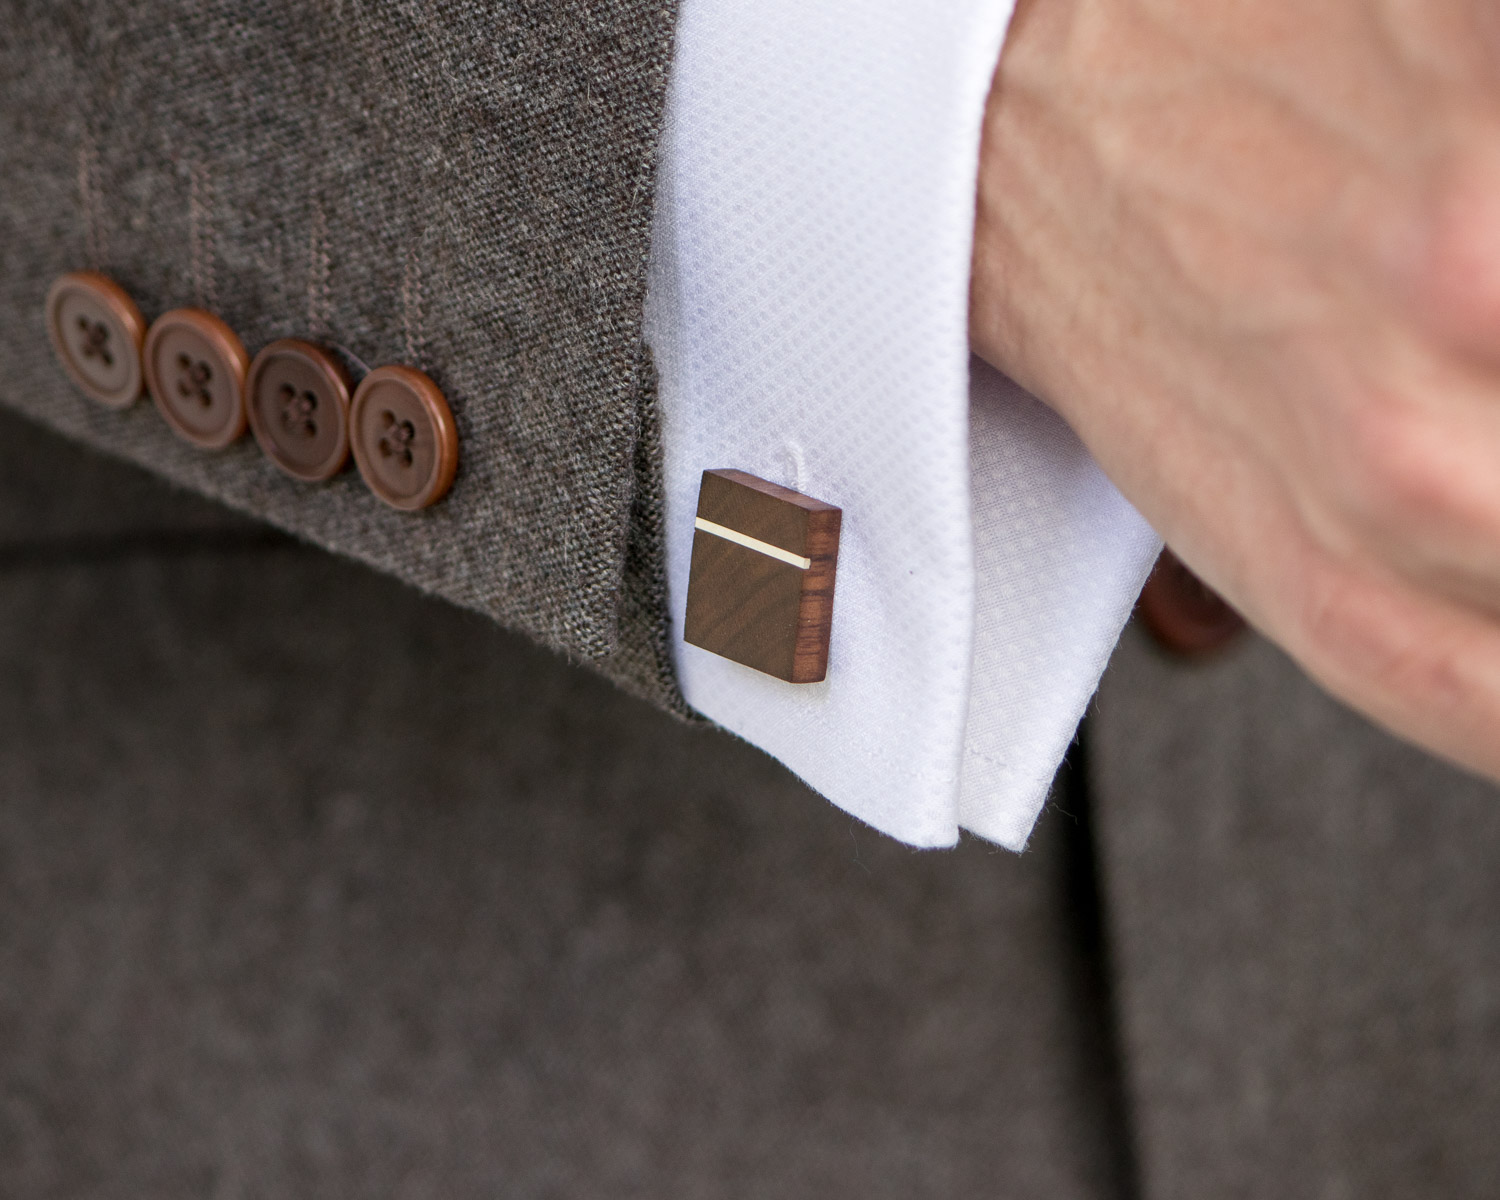 Walnut & Sterling Silver Cufflinks being worn with a suit